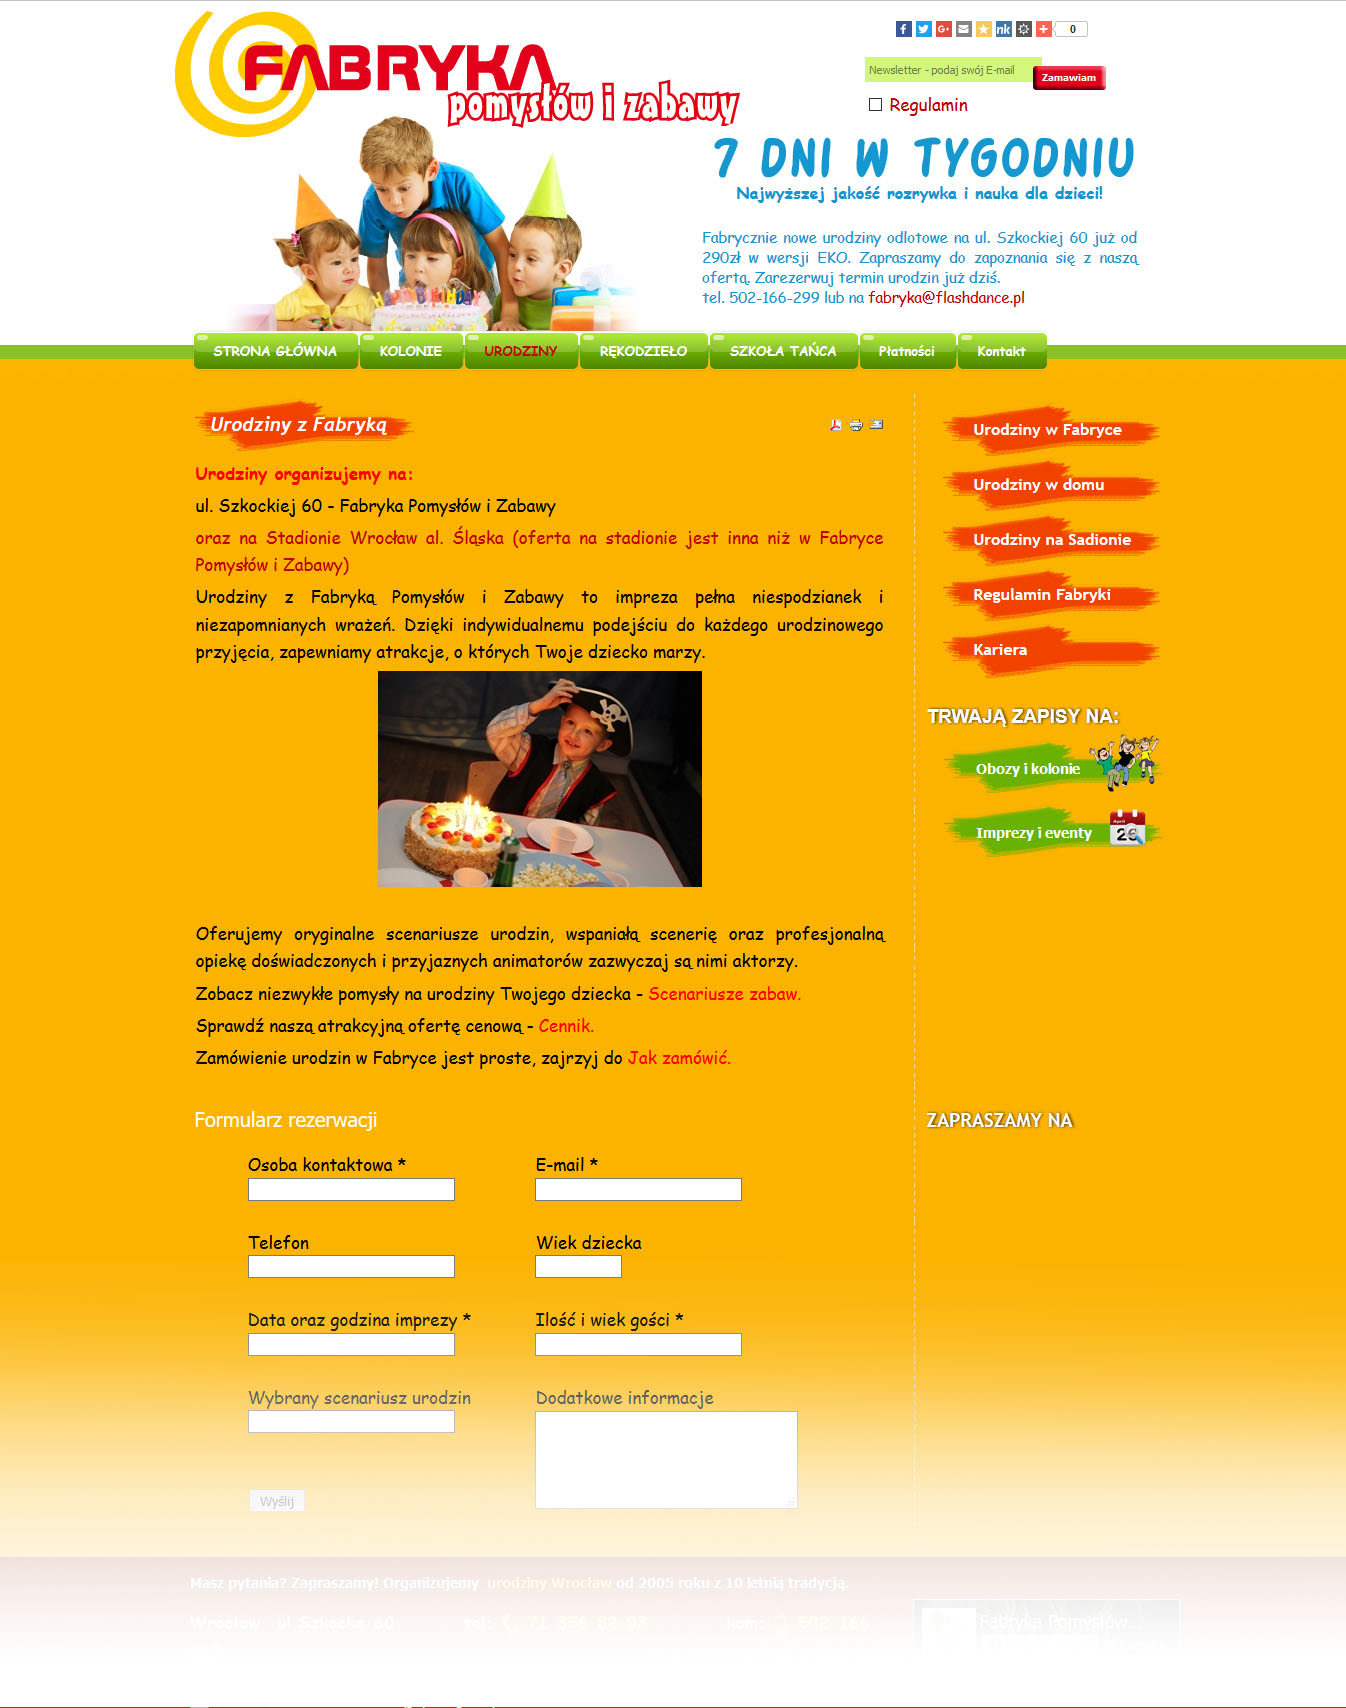 Joomla Hjemmeside<div style='clear:both;width:100%;height:0px;'></div><span class='cat'>Joomla</span>